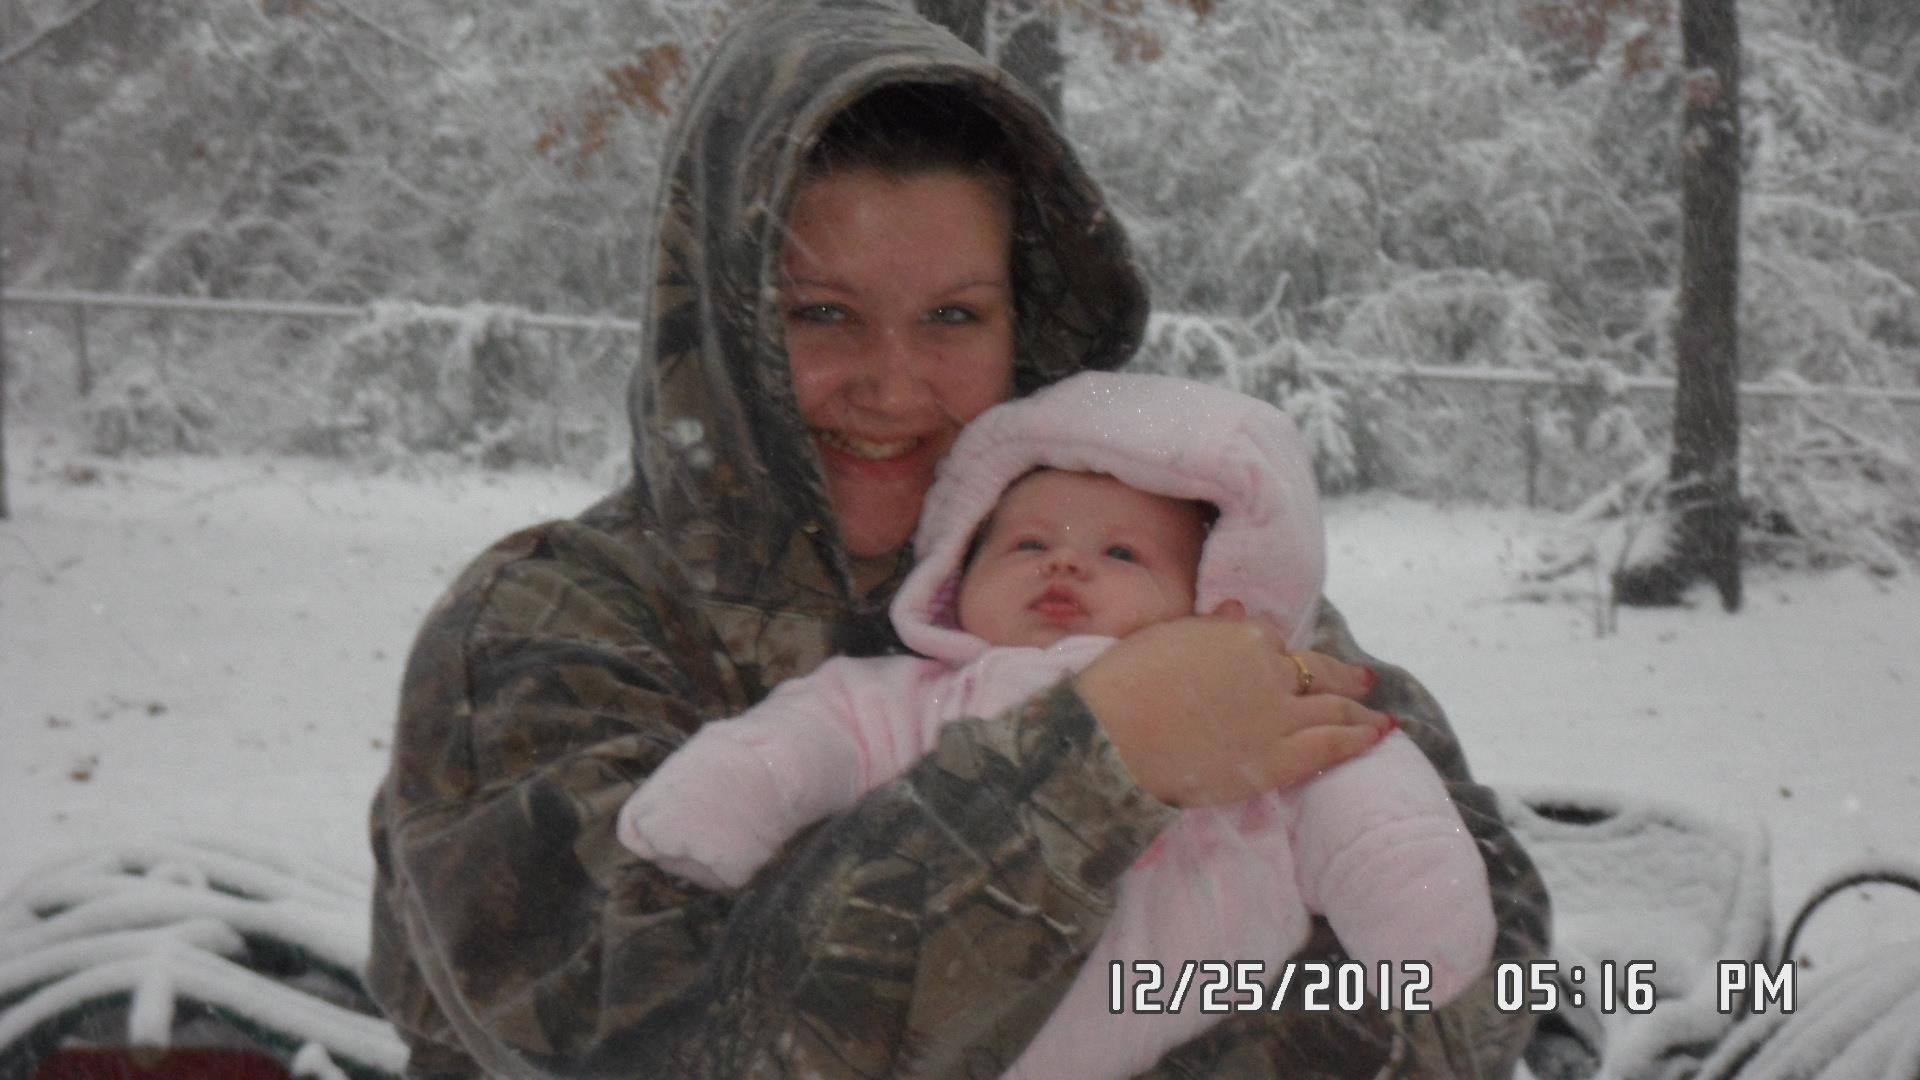 My baby girls first white christmas!